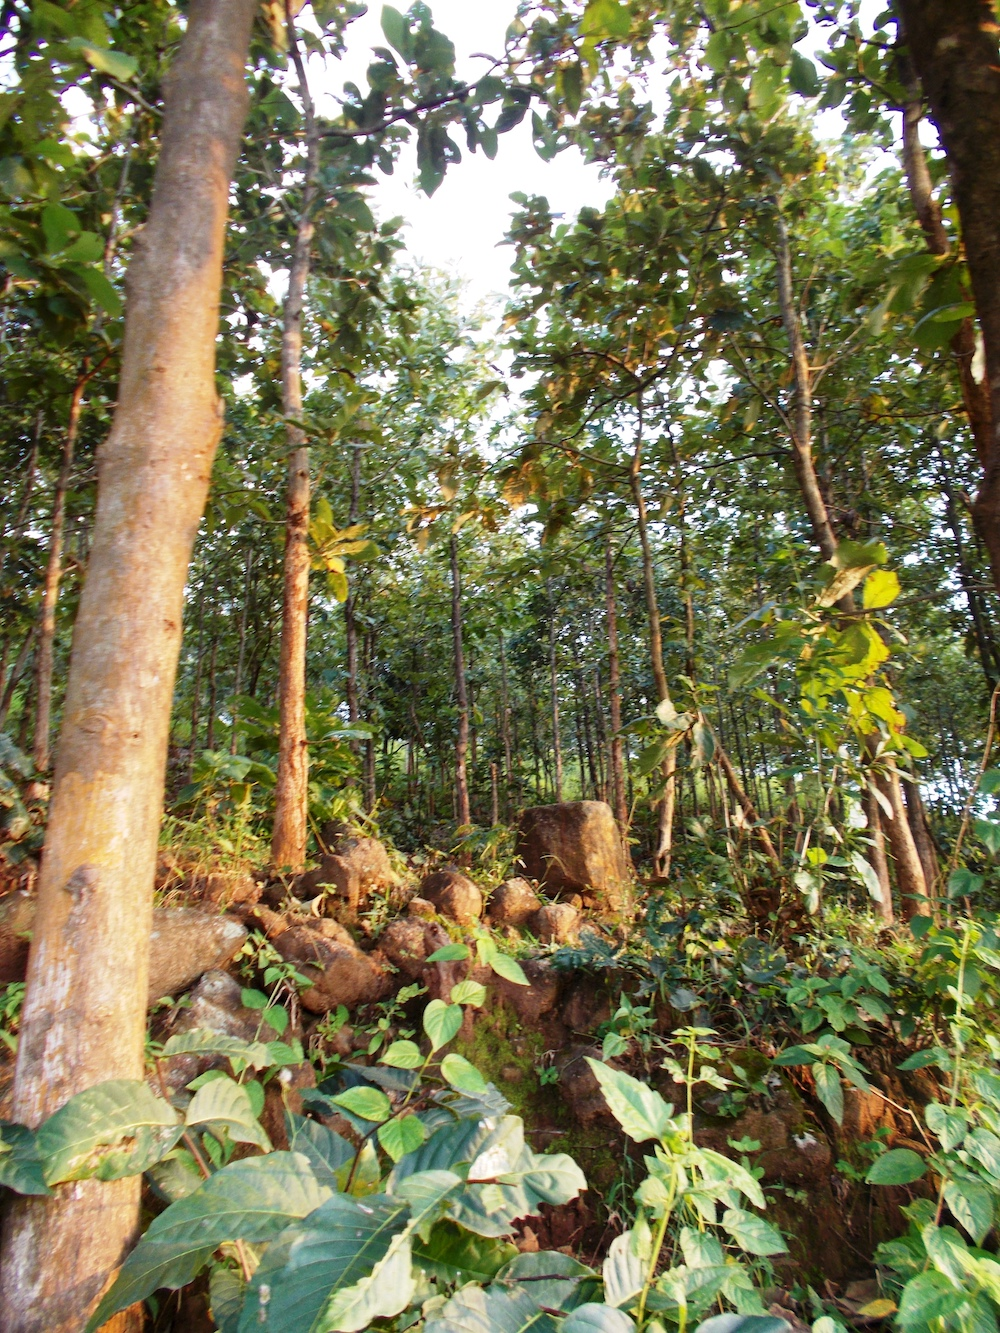 Compensated teak forest